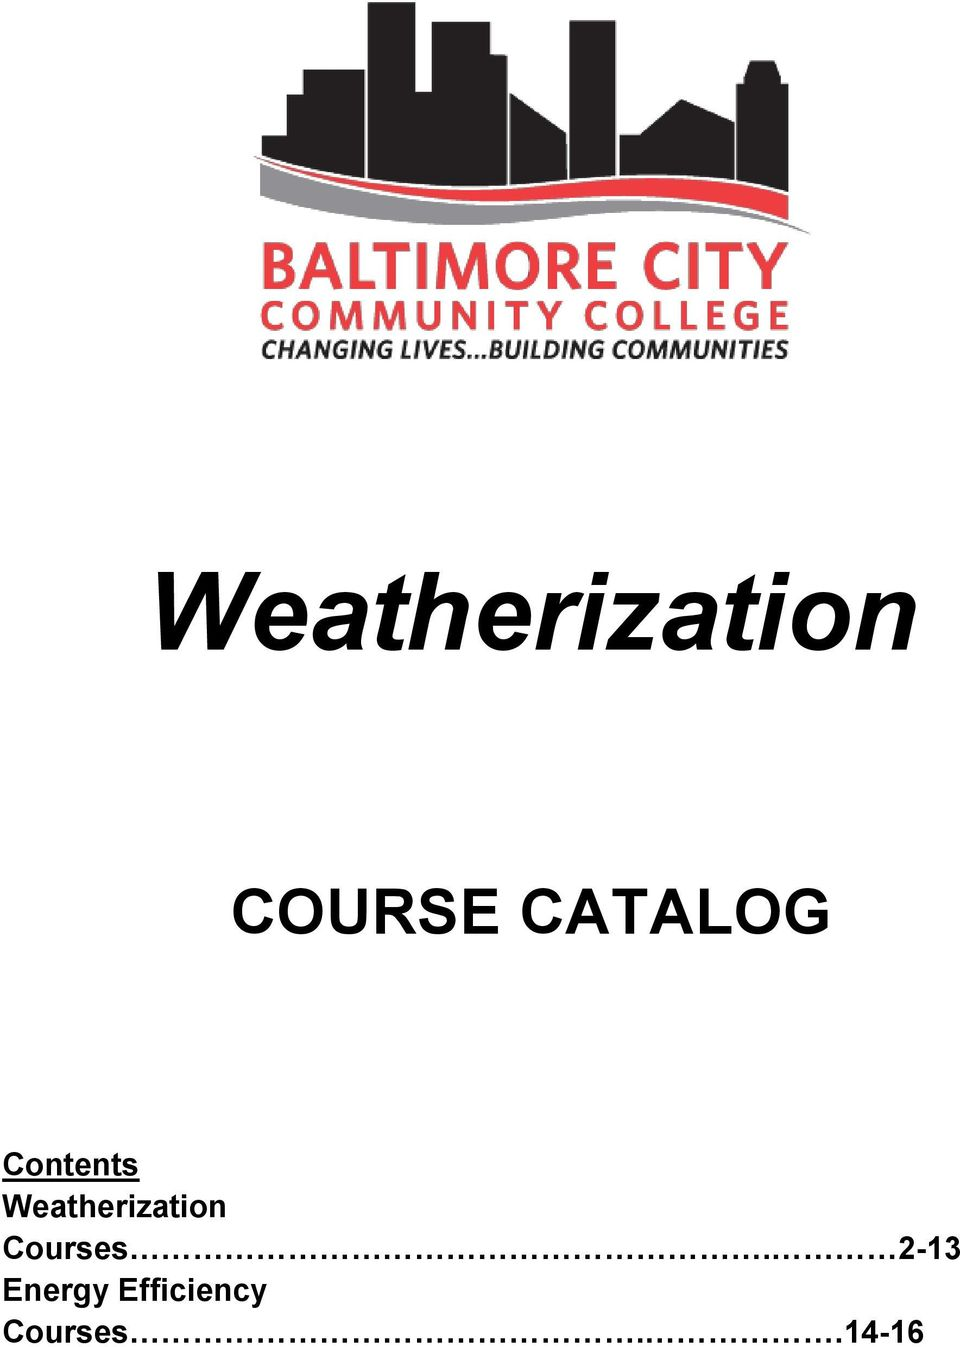 Weatherization Courses.